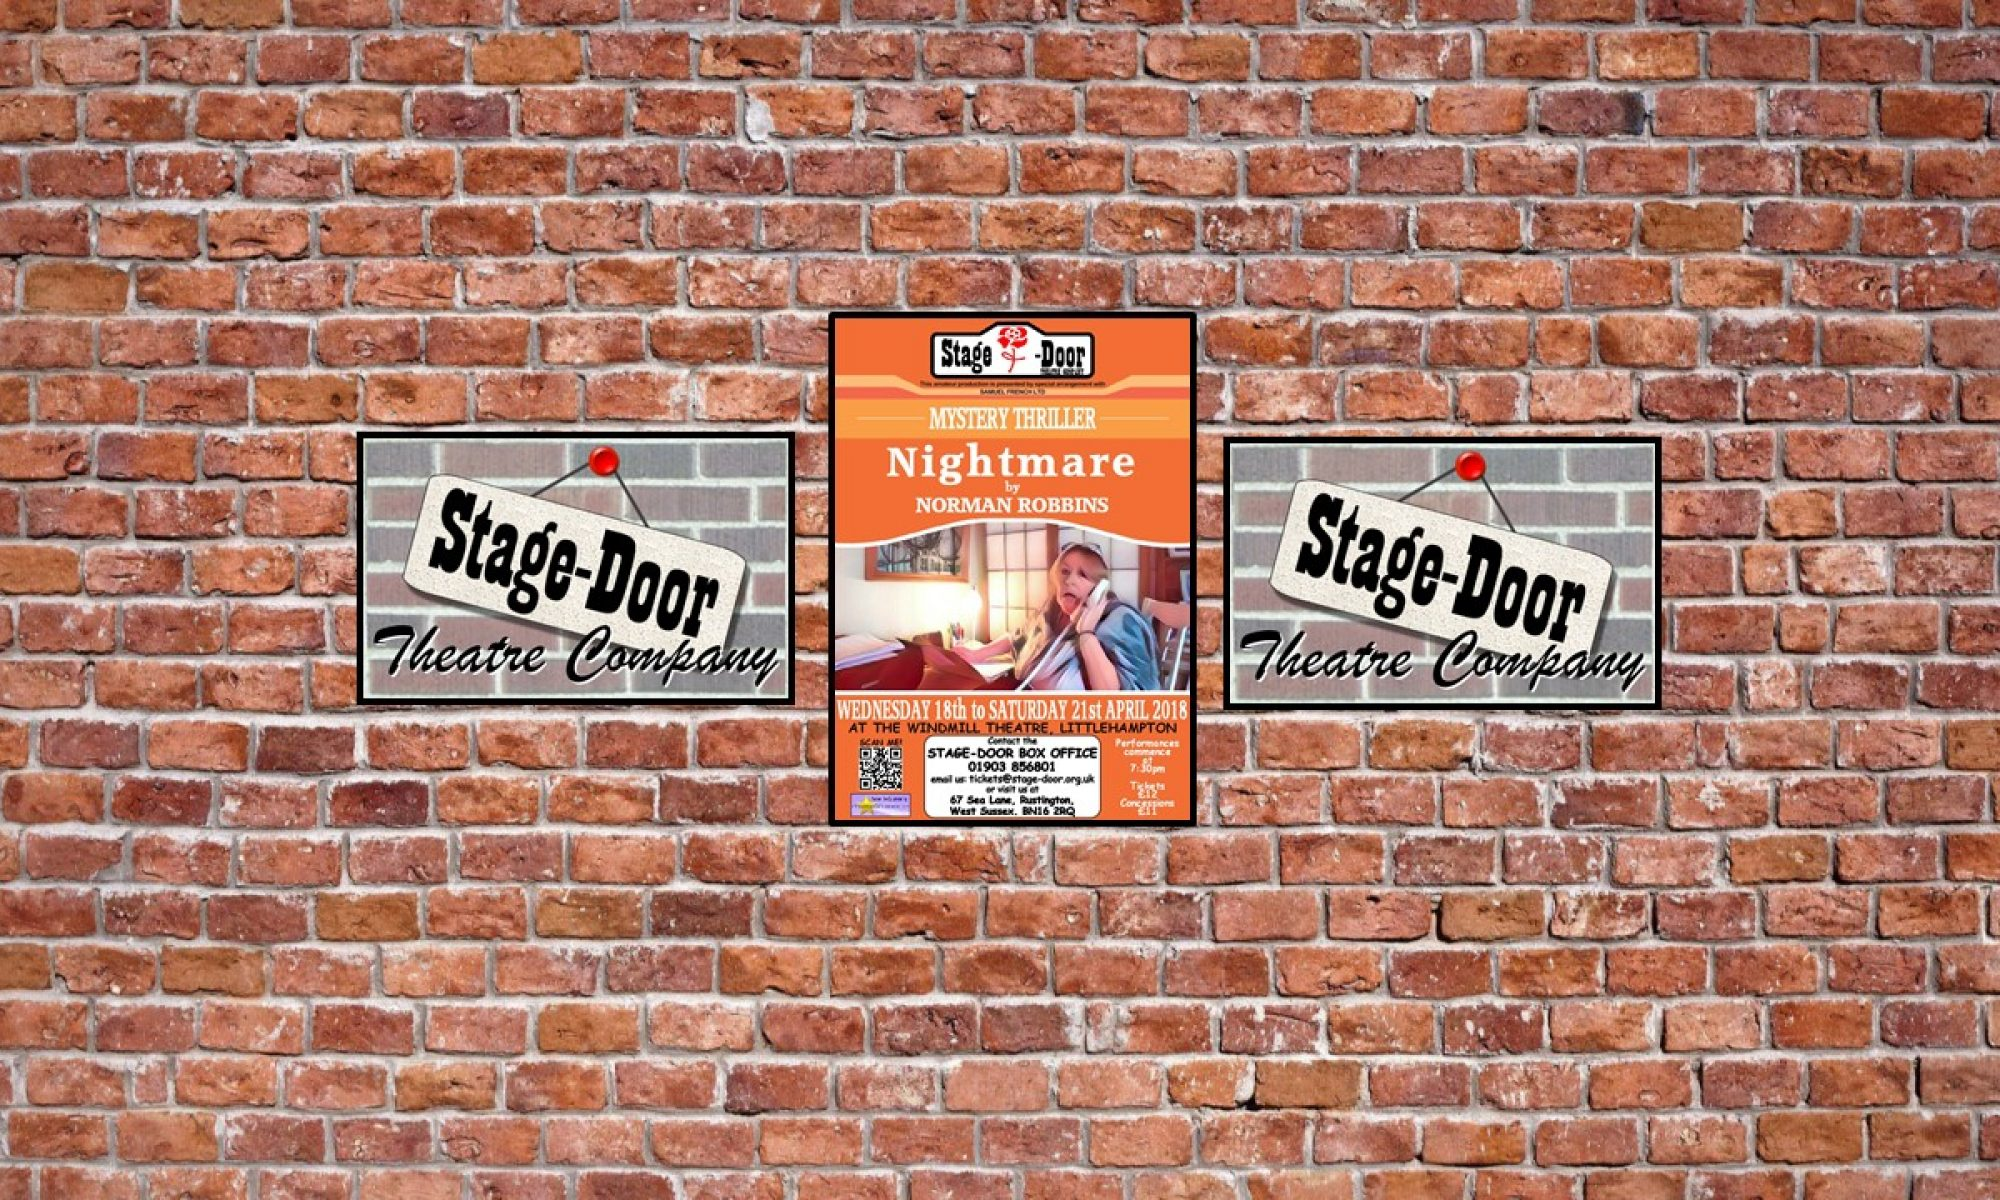 STAGE-DOOR THEATRE COMPANY